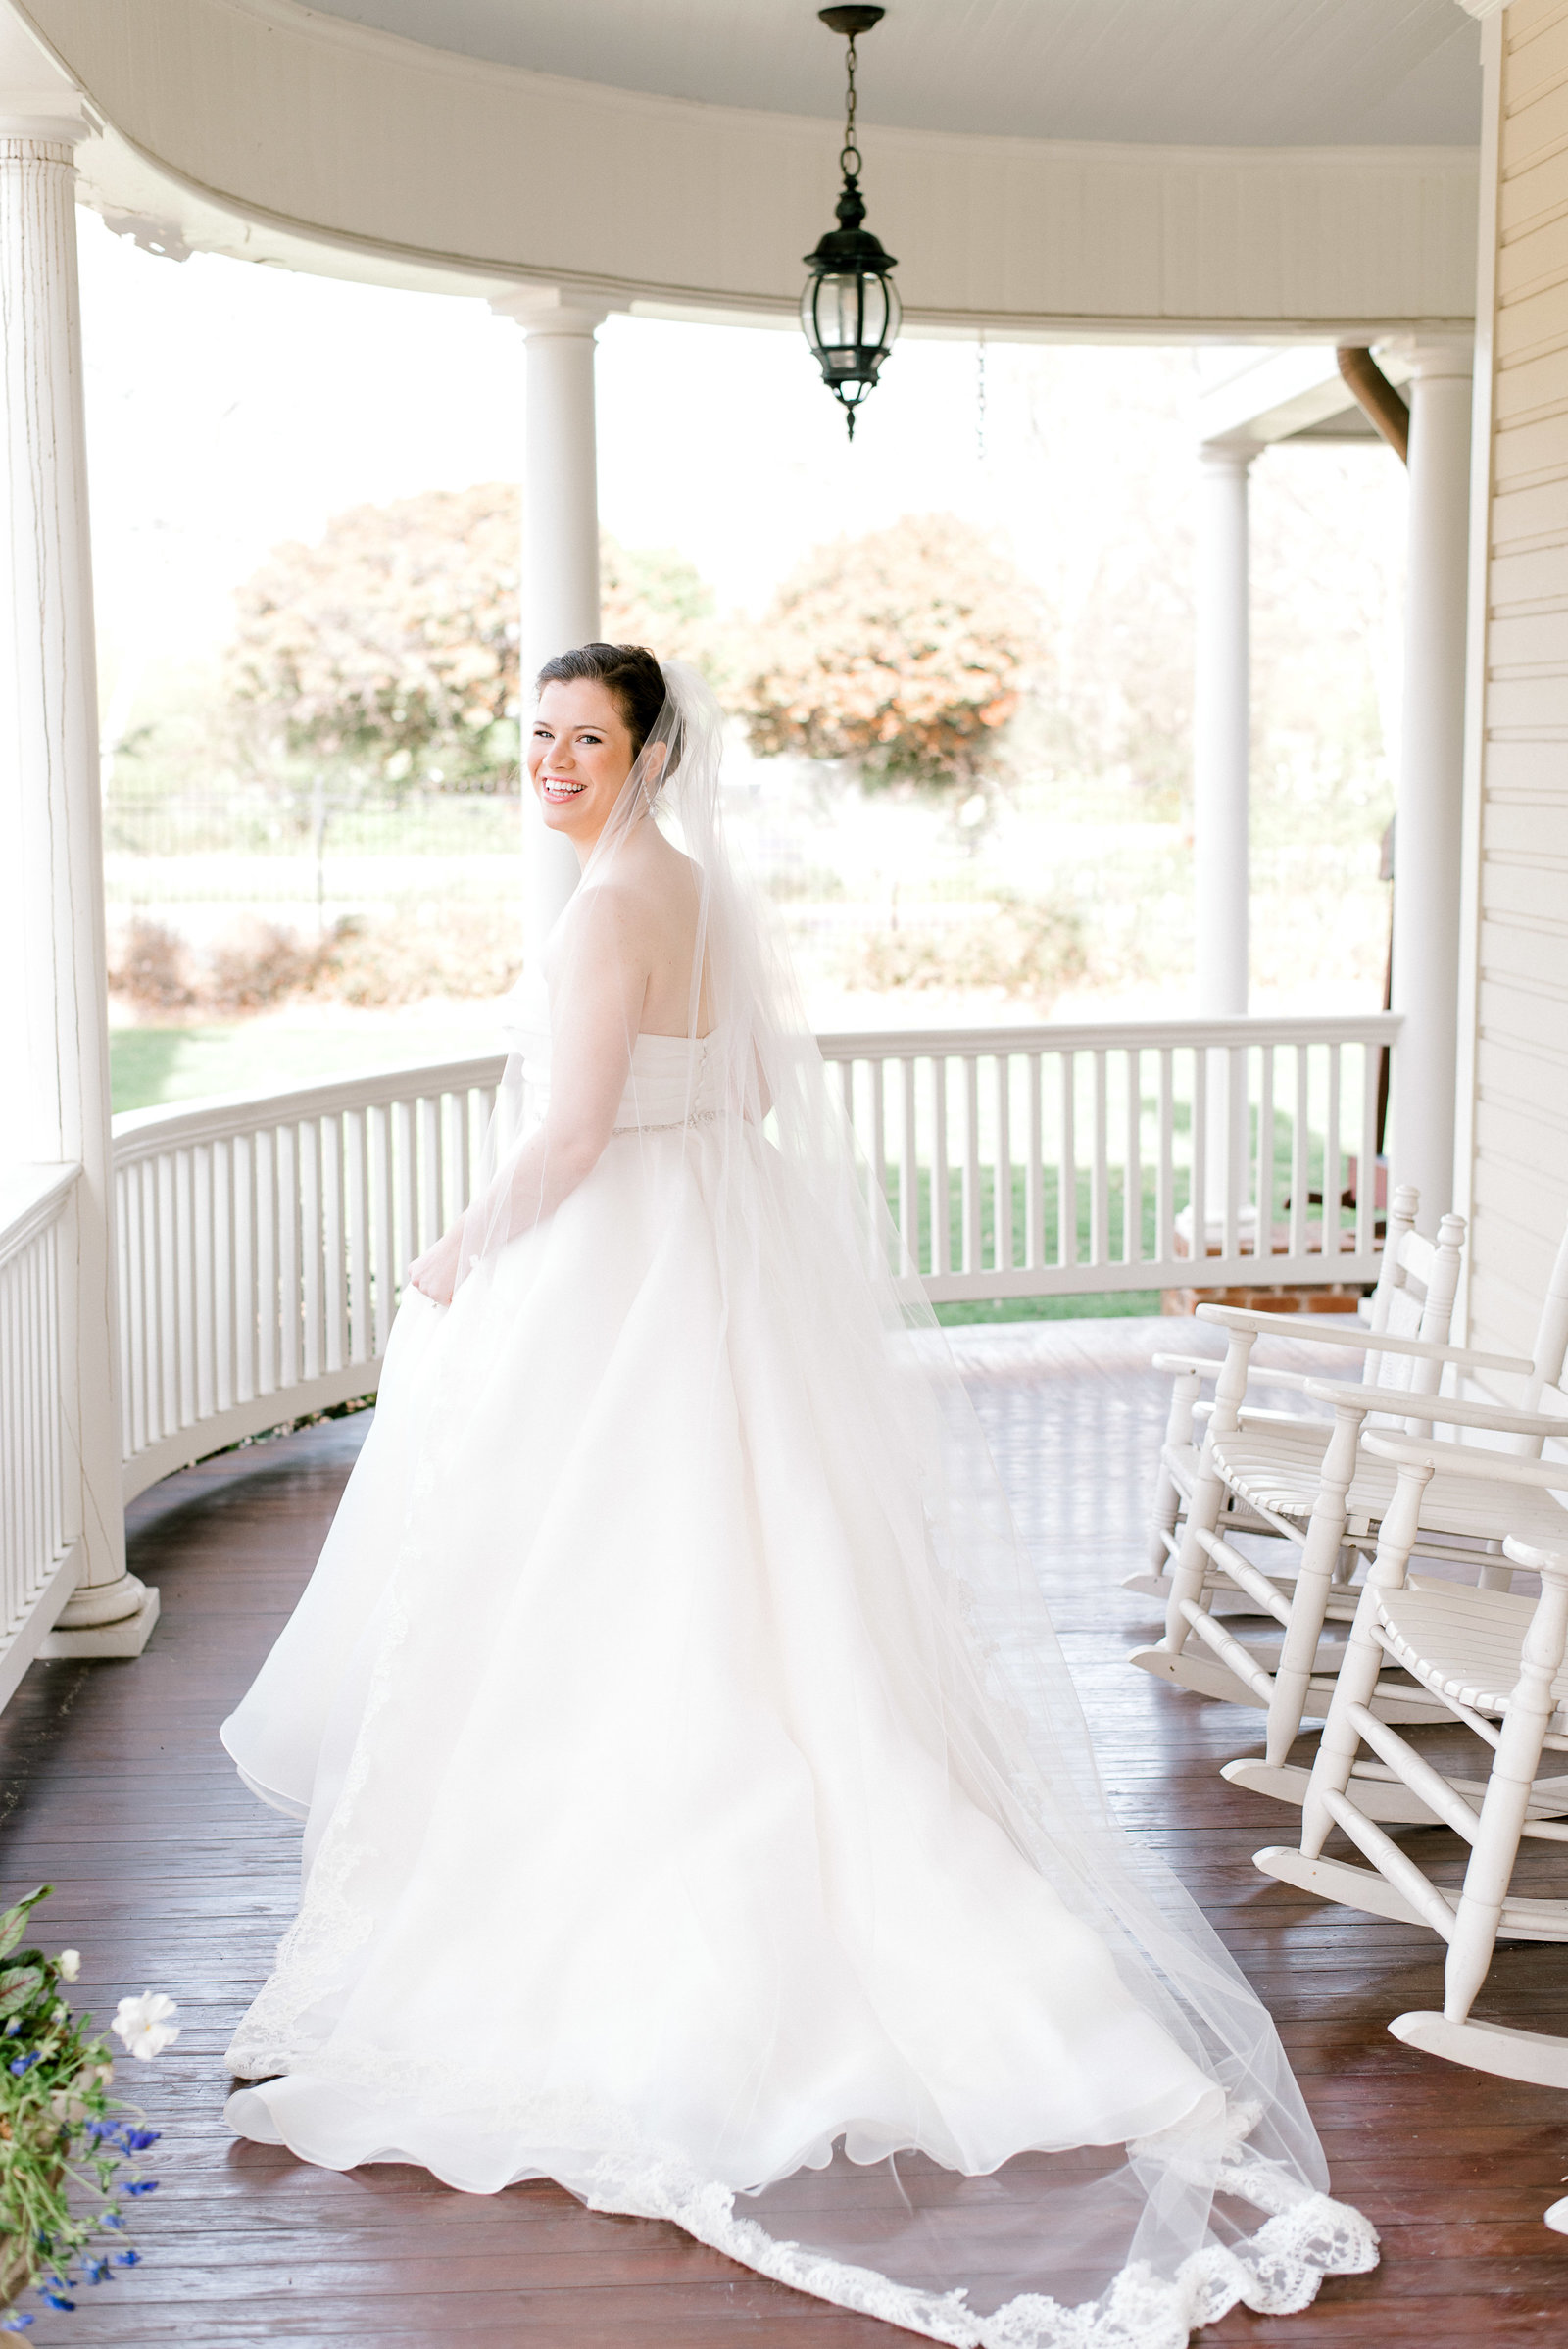 charlotte-wedding-photographer-alexander-homestead-weddings-bride-bridal-session-wedding-fine-art-bright-and-airy-film-photographer-alyssa-frost-photography-3